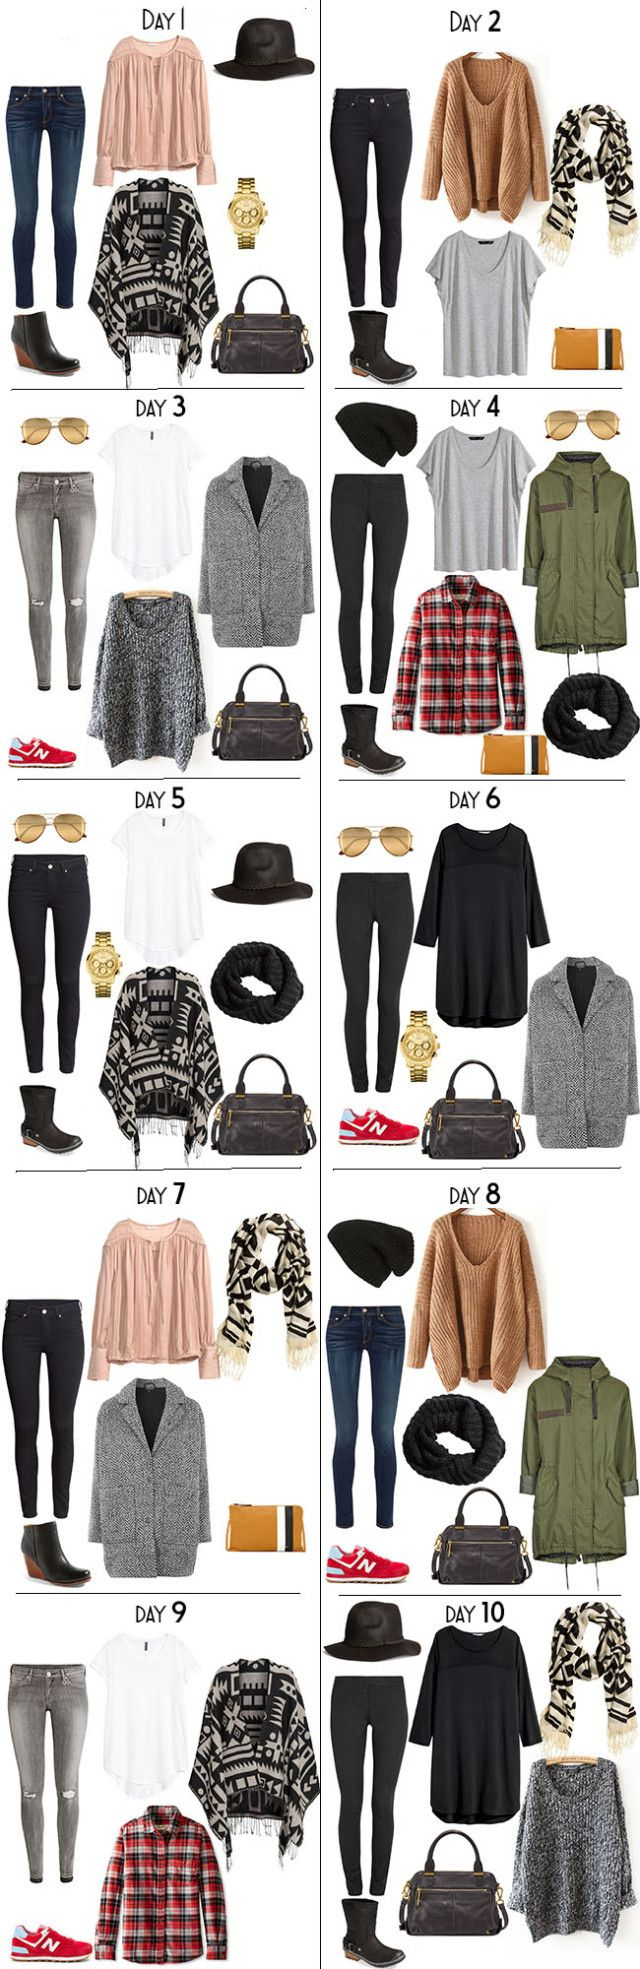 Outfit options for the packing light 10 Days in New Zealand packing list on my blog. #packinglight #travellight #packinglist